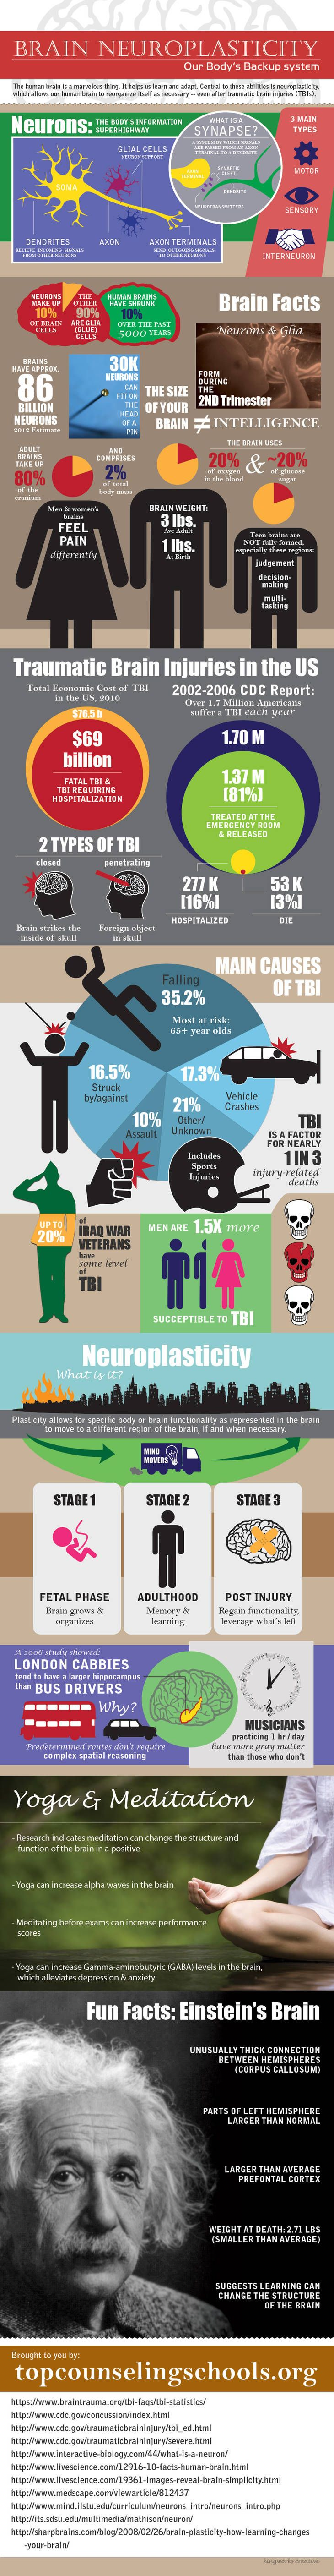 An infographic which presents statistics and other information related to brain neuroplasticity, inc